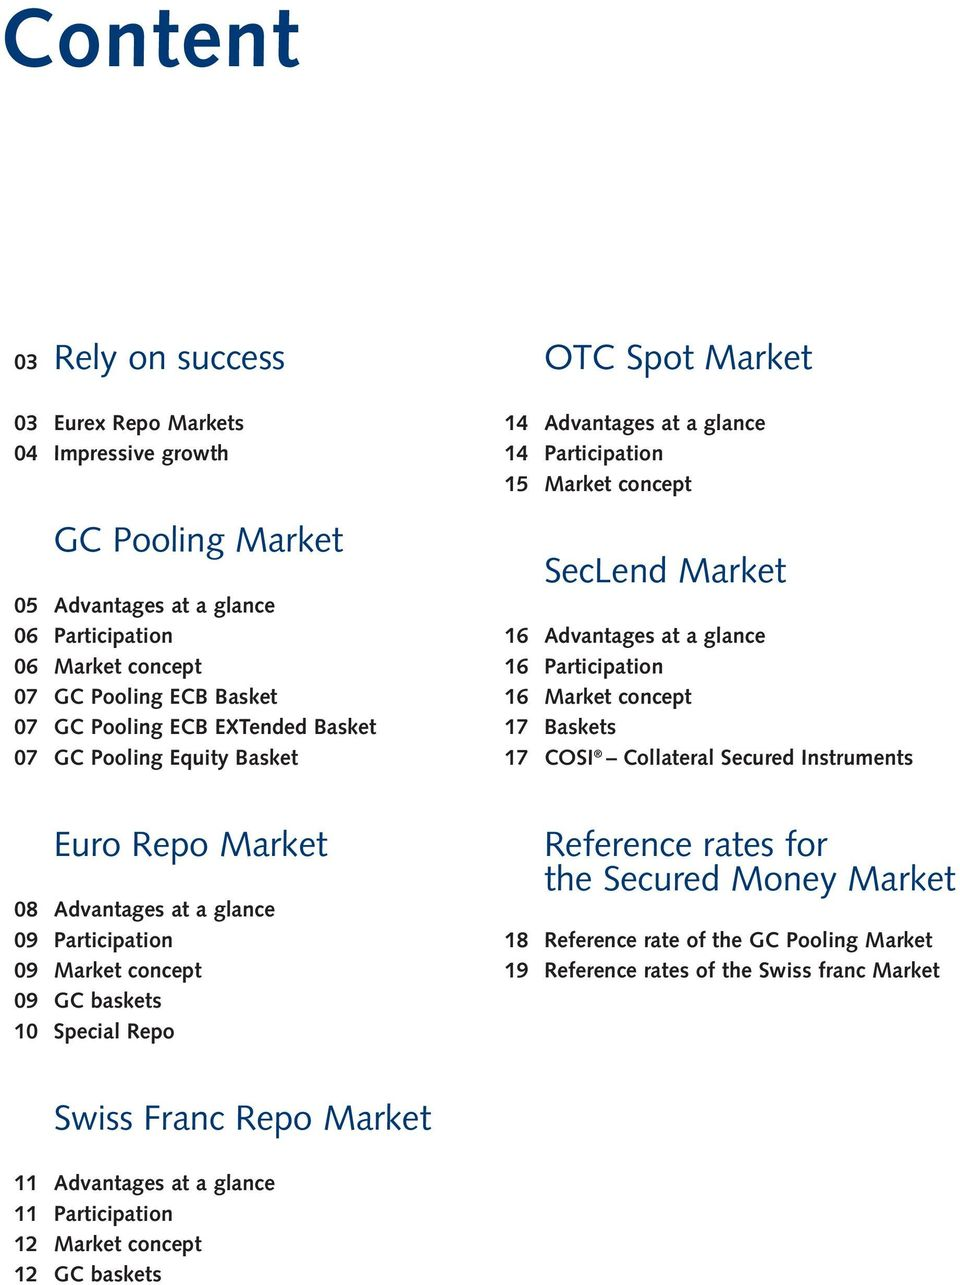 14 Participation 15 Market concept SecLend Market 16 Advantages at a glance 16 Participation 16 Market concept 17 Baskets 17 COSI Collateral Secured Instruments Reference rates for the Secured